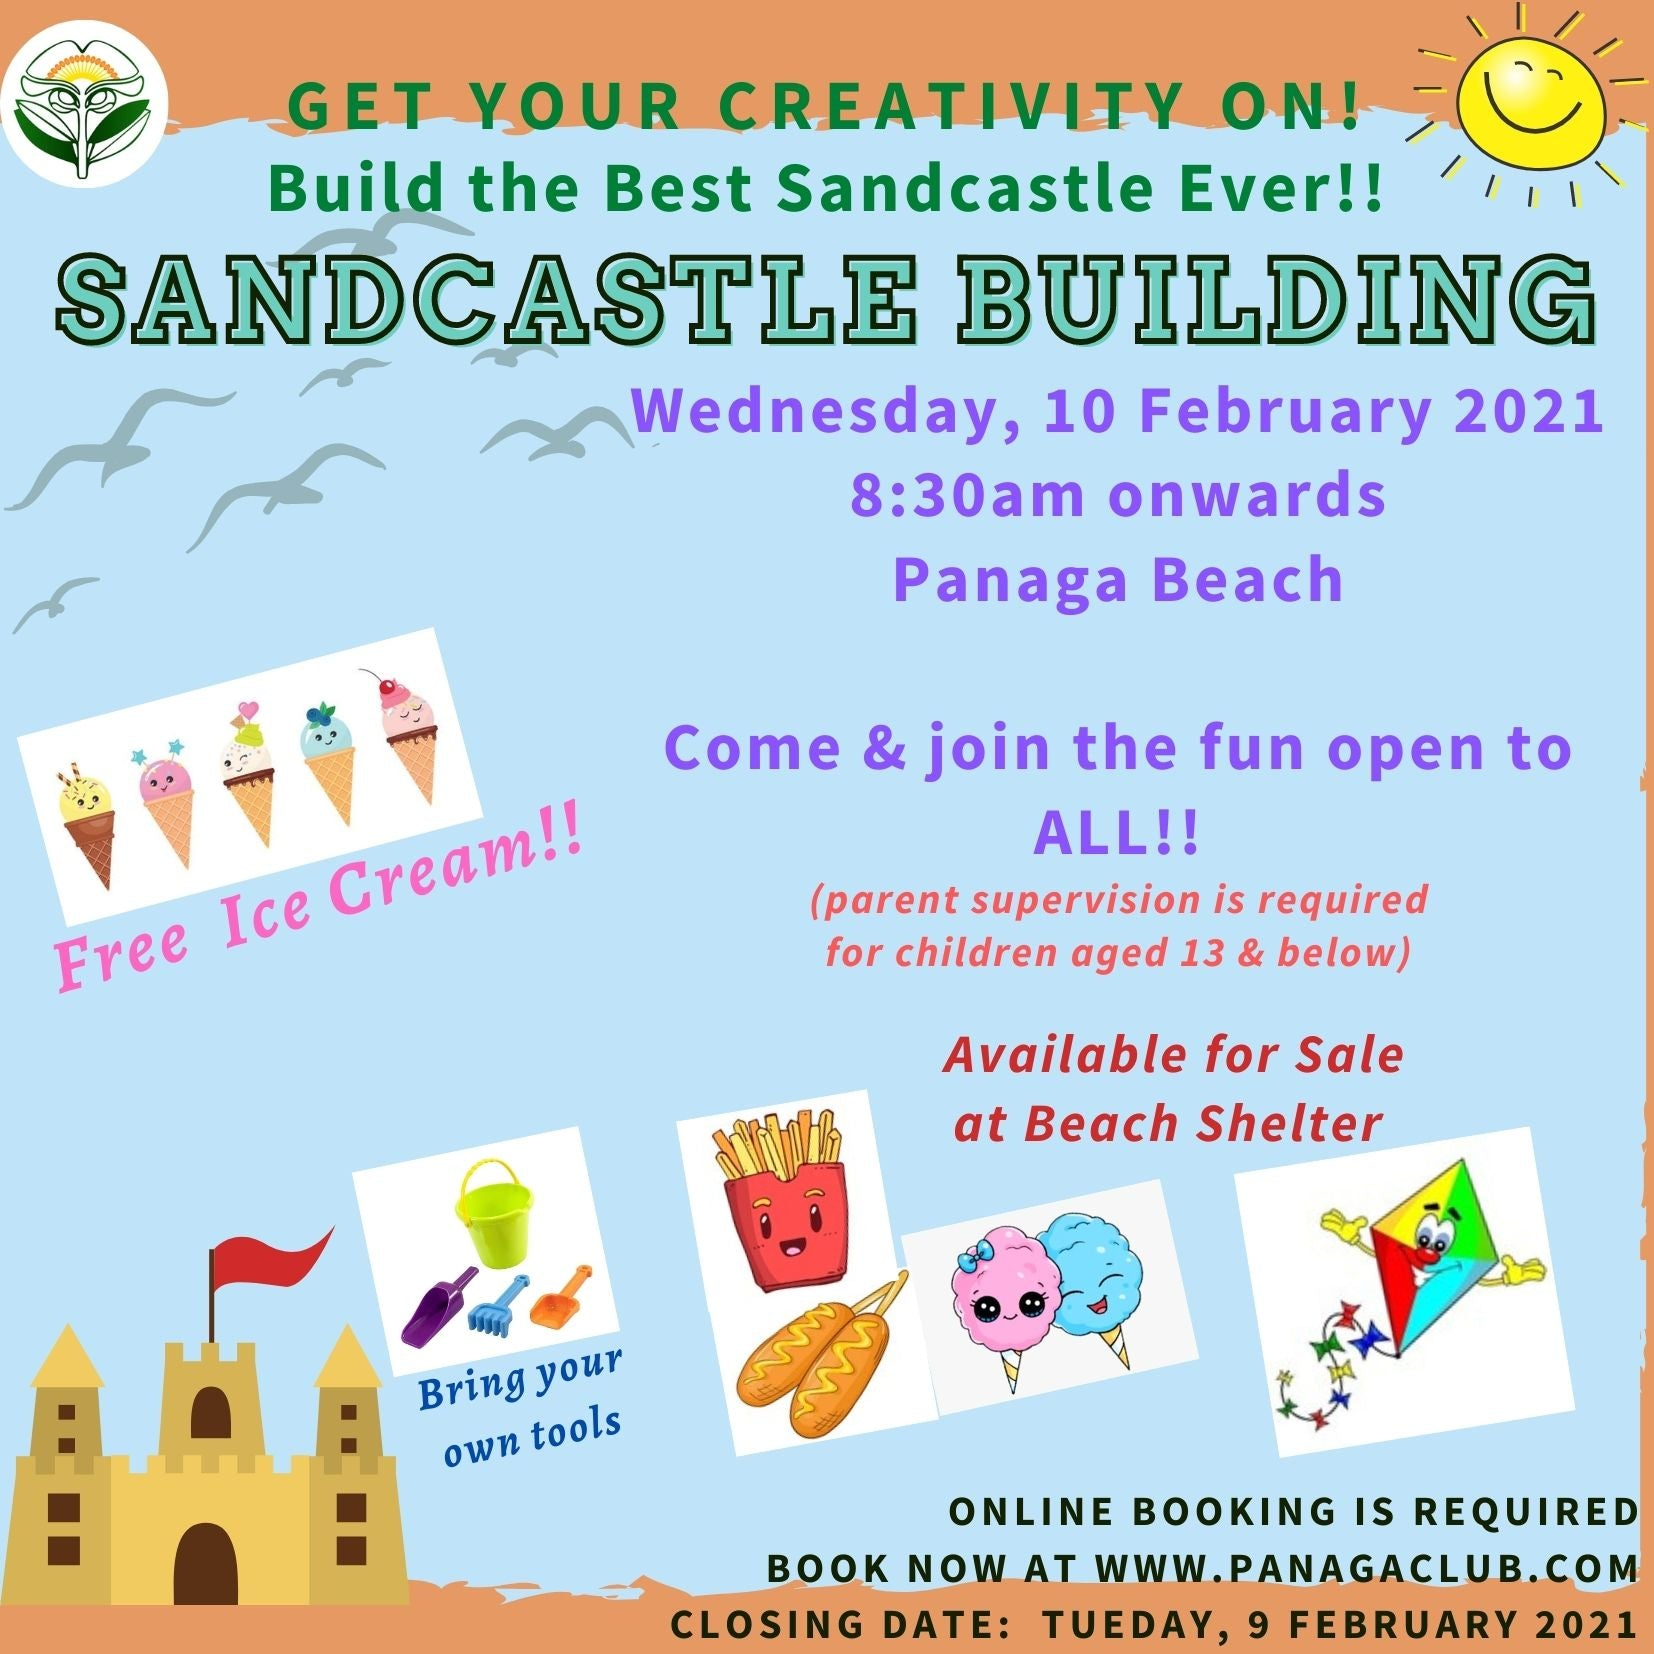 Come & Join the Fun at Sandcastle Building!! 10/2/2021 @ 8.30am